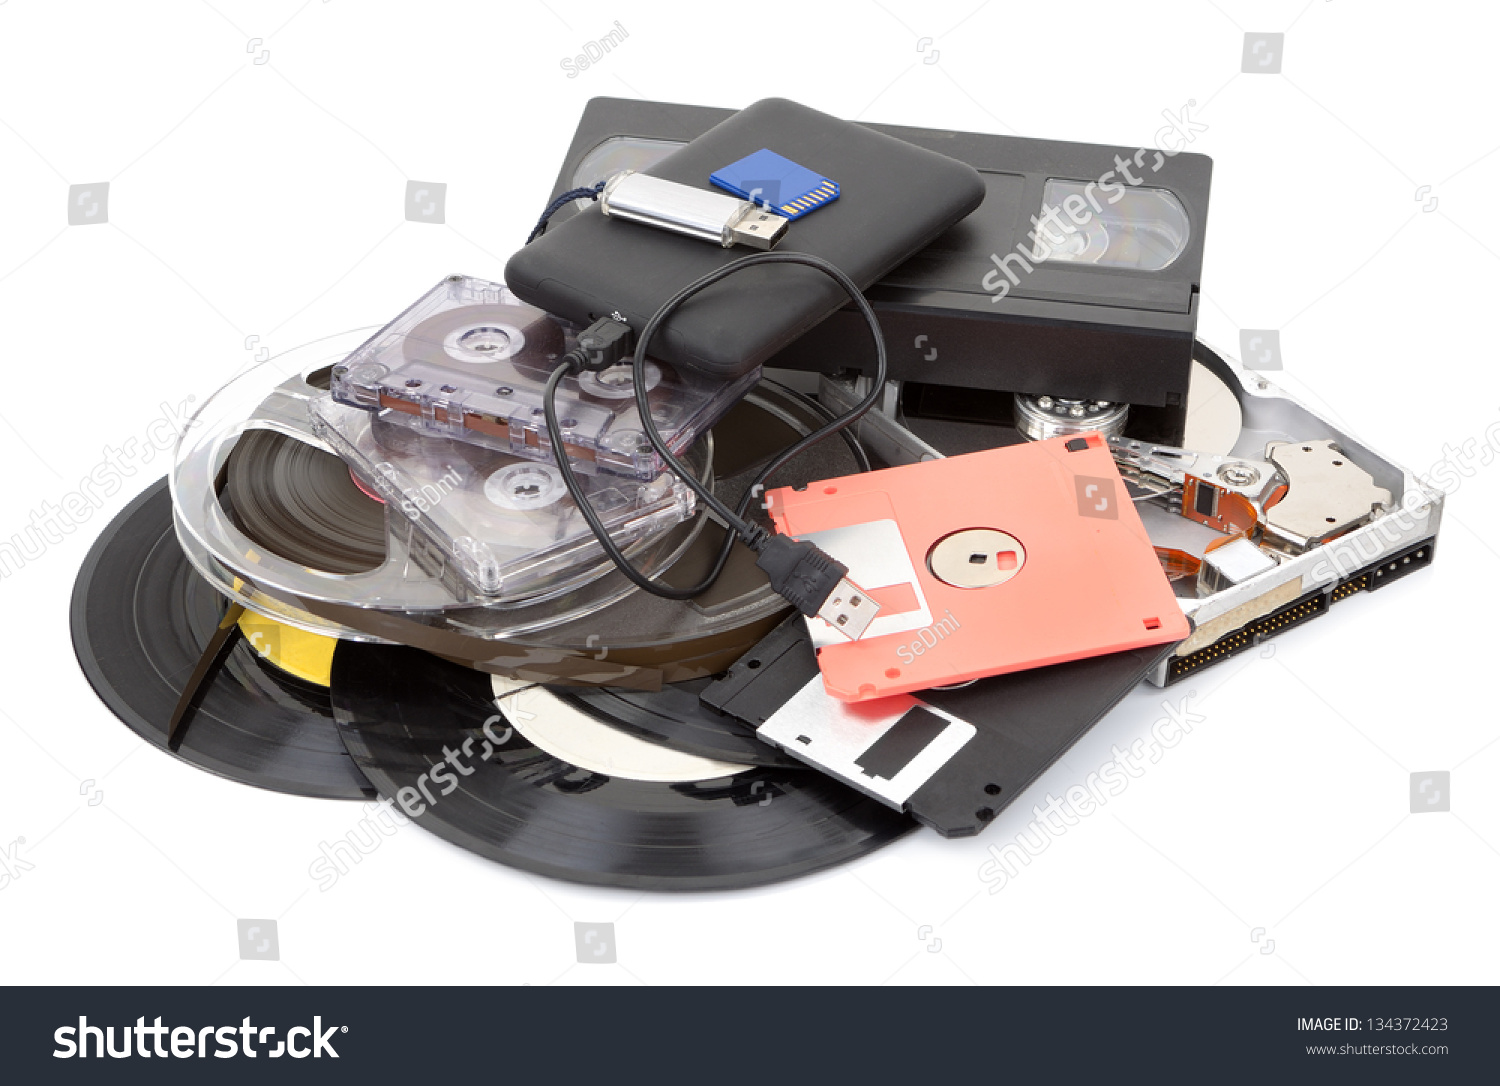 Different Data Storage Devices Stock Photo 134372423 : Shutterstock